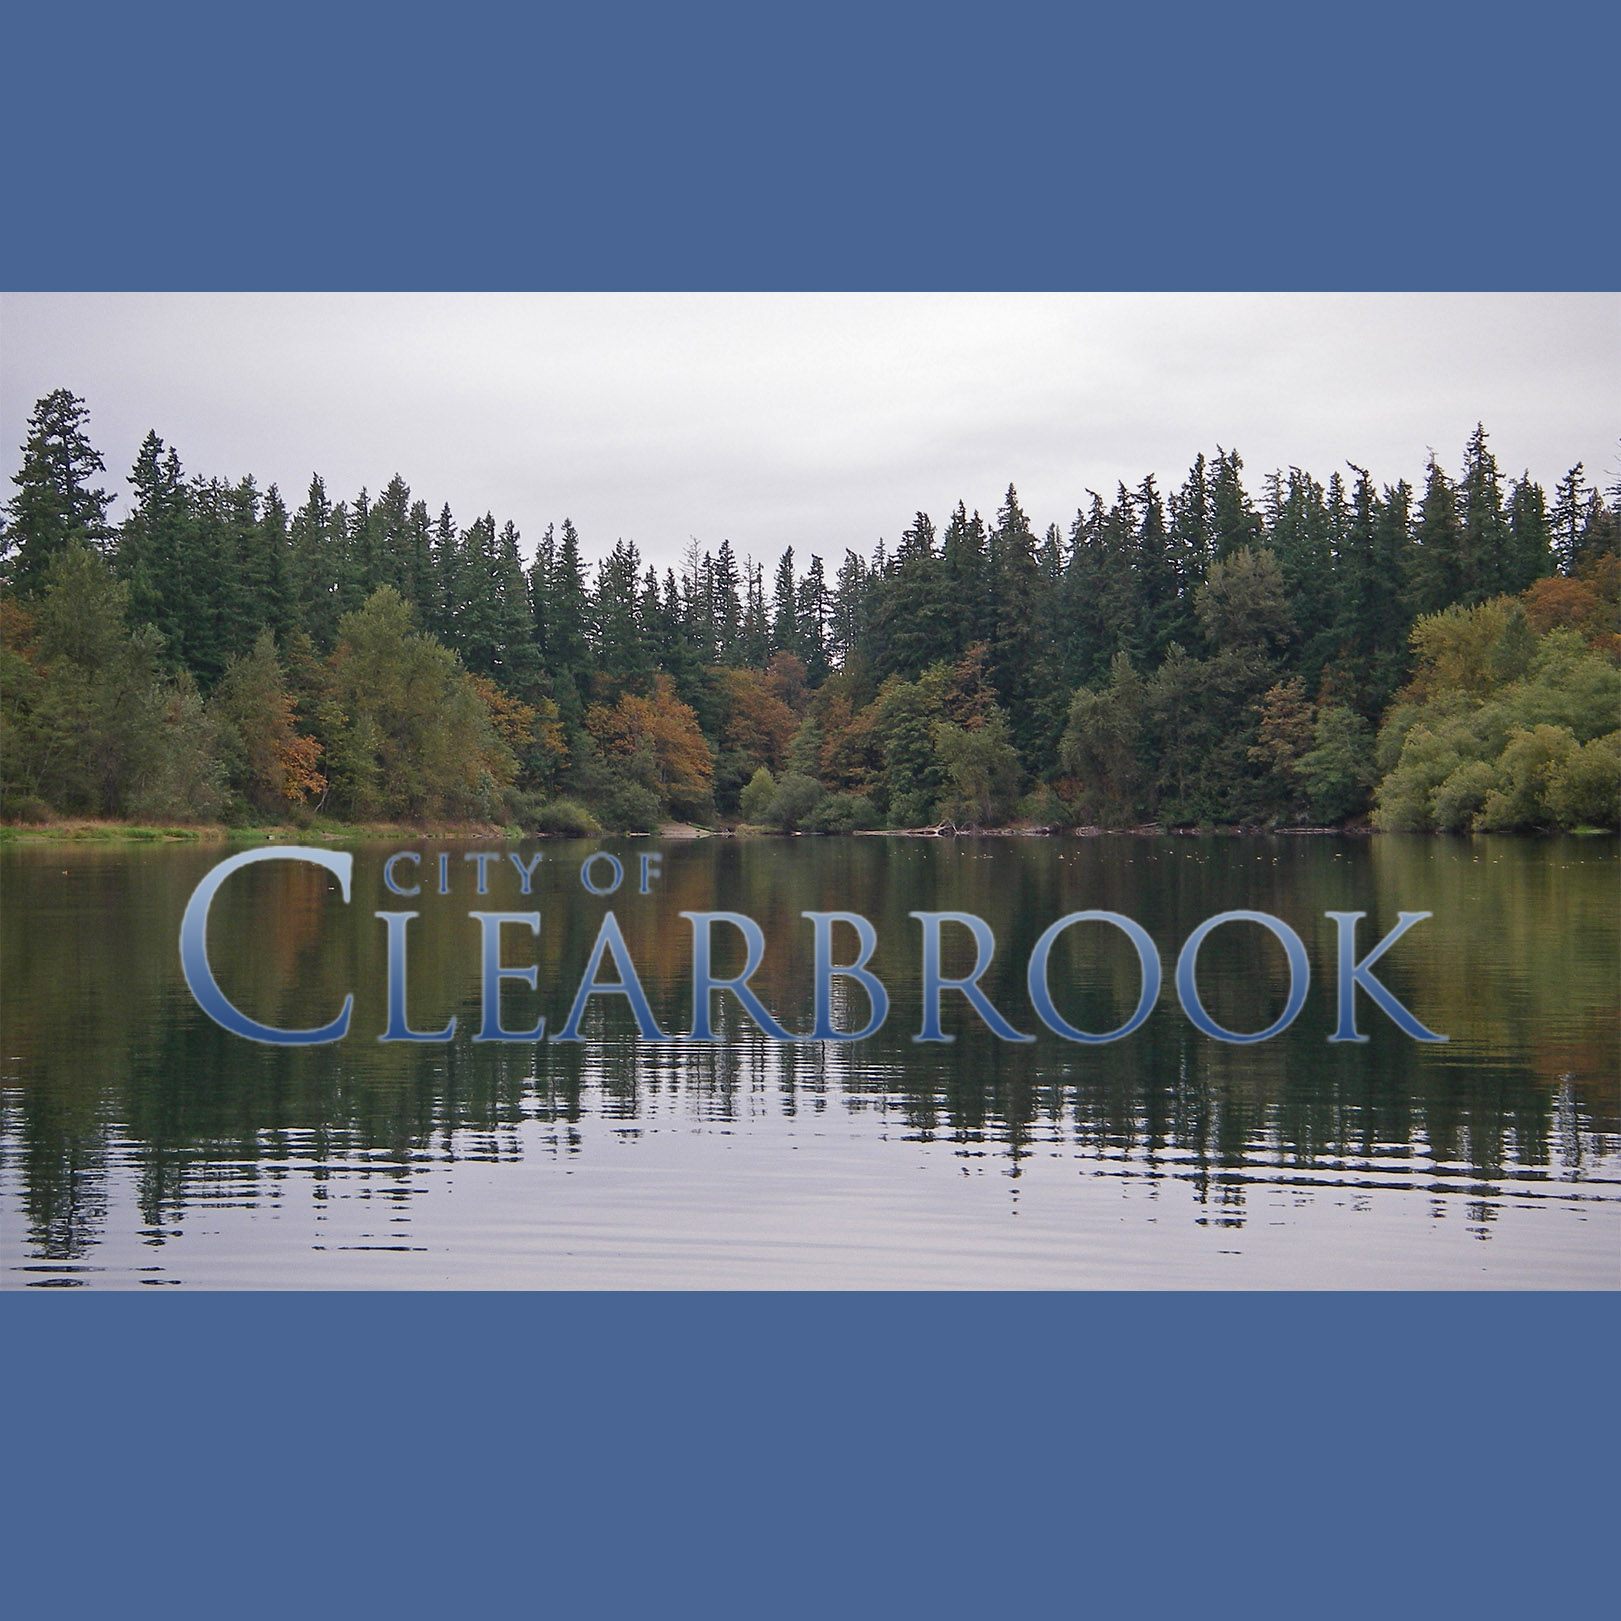 City of Clearbrook